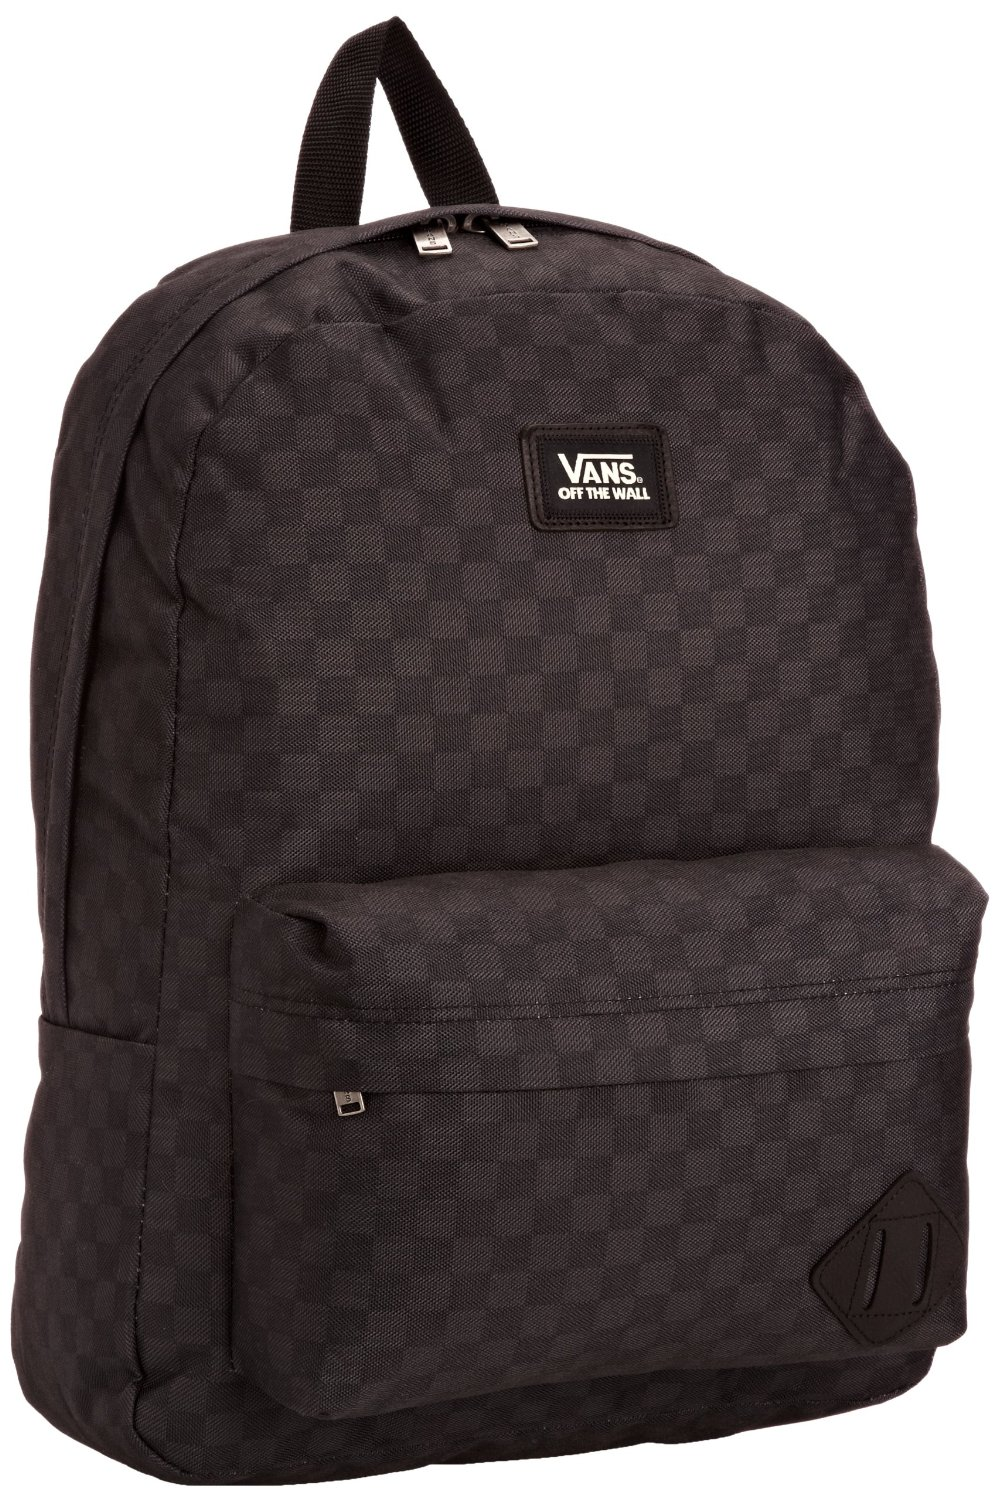 vans herren rucksack m old skool ii backpack schwarz. Black Bedroom Furniture Sets. Home Design Ideas